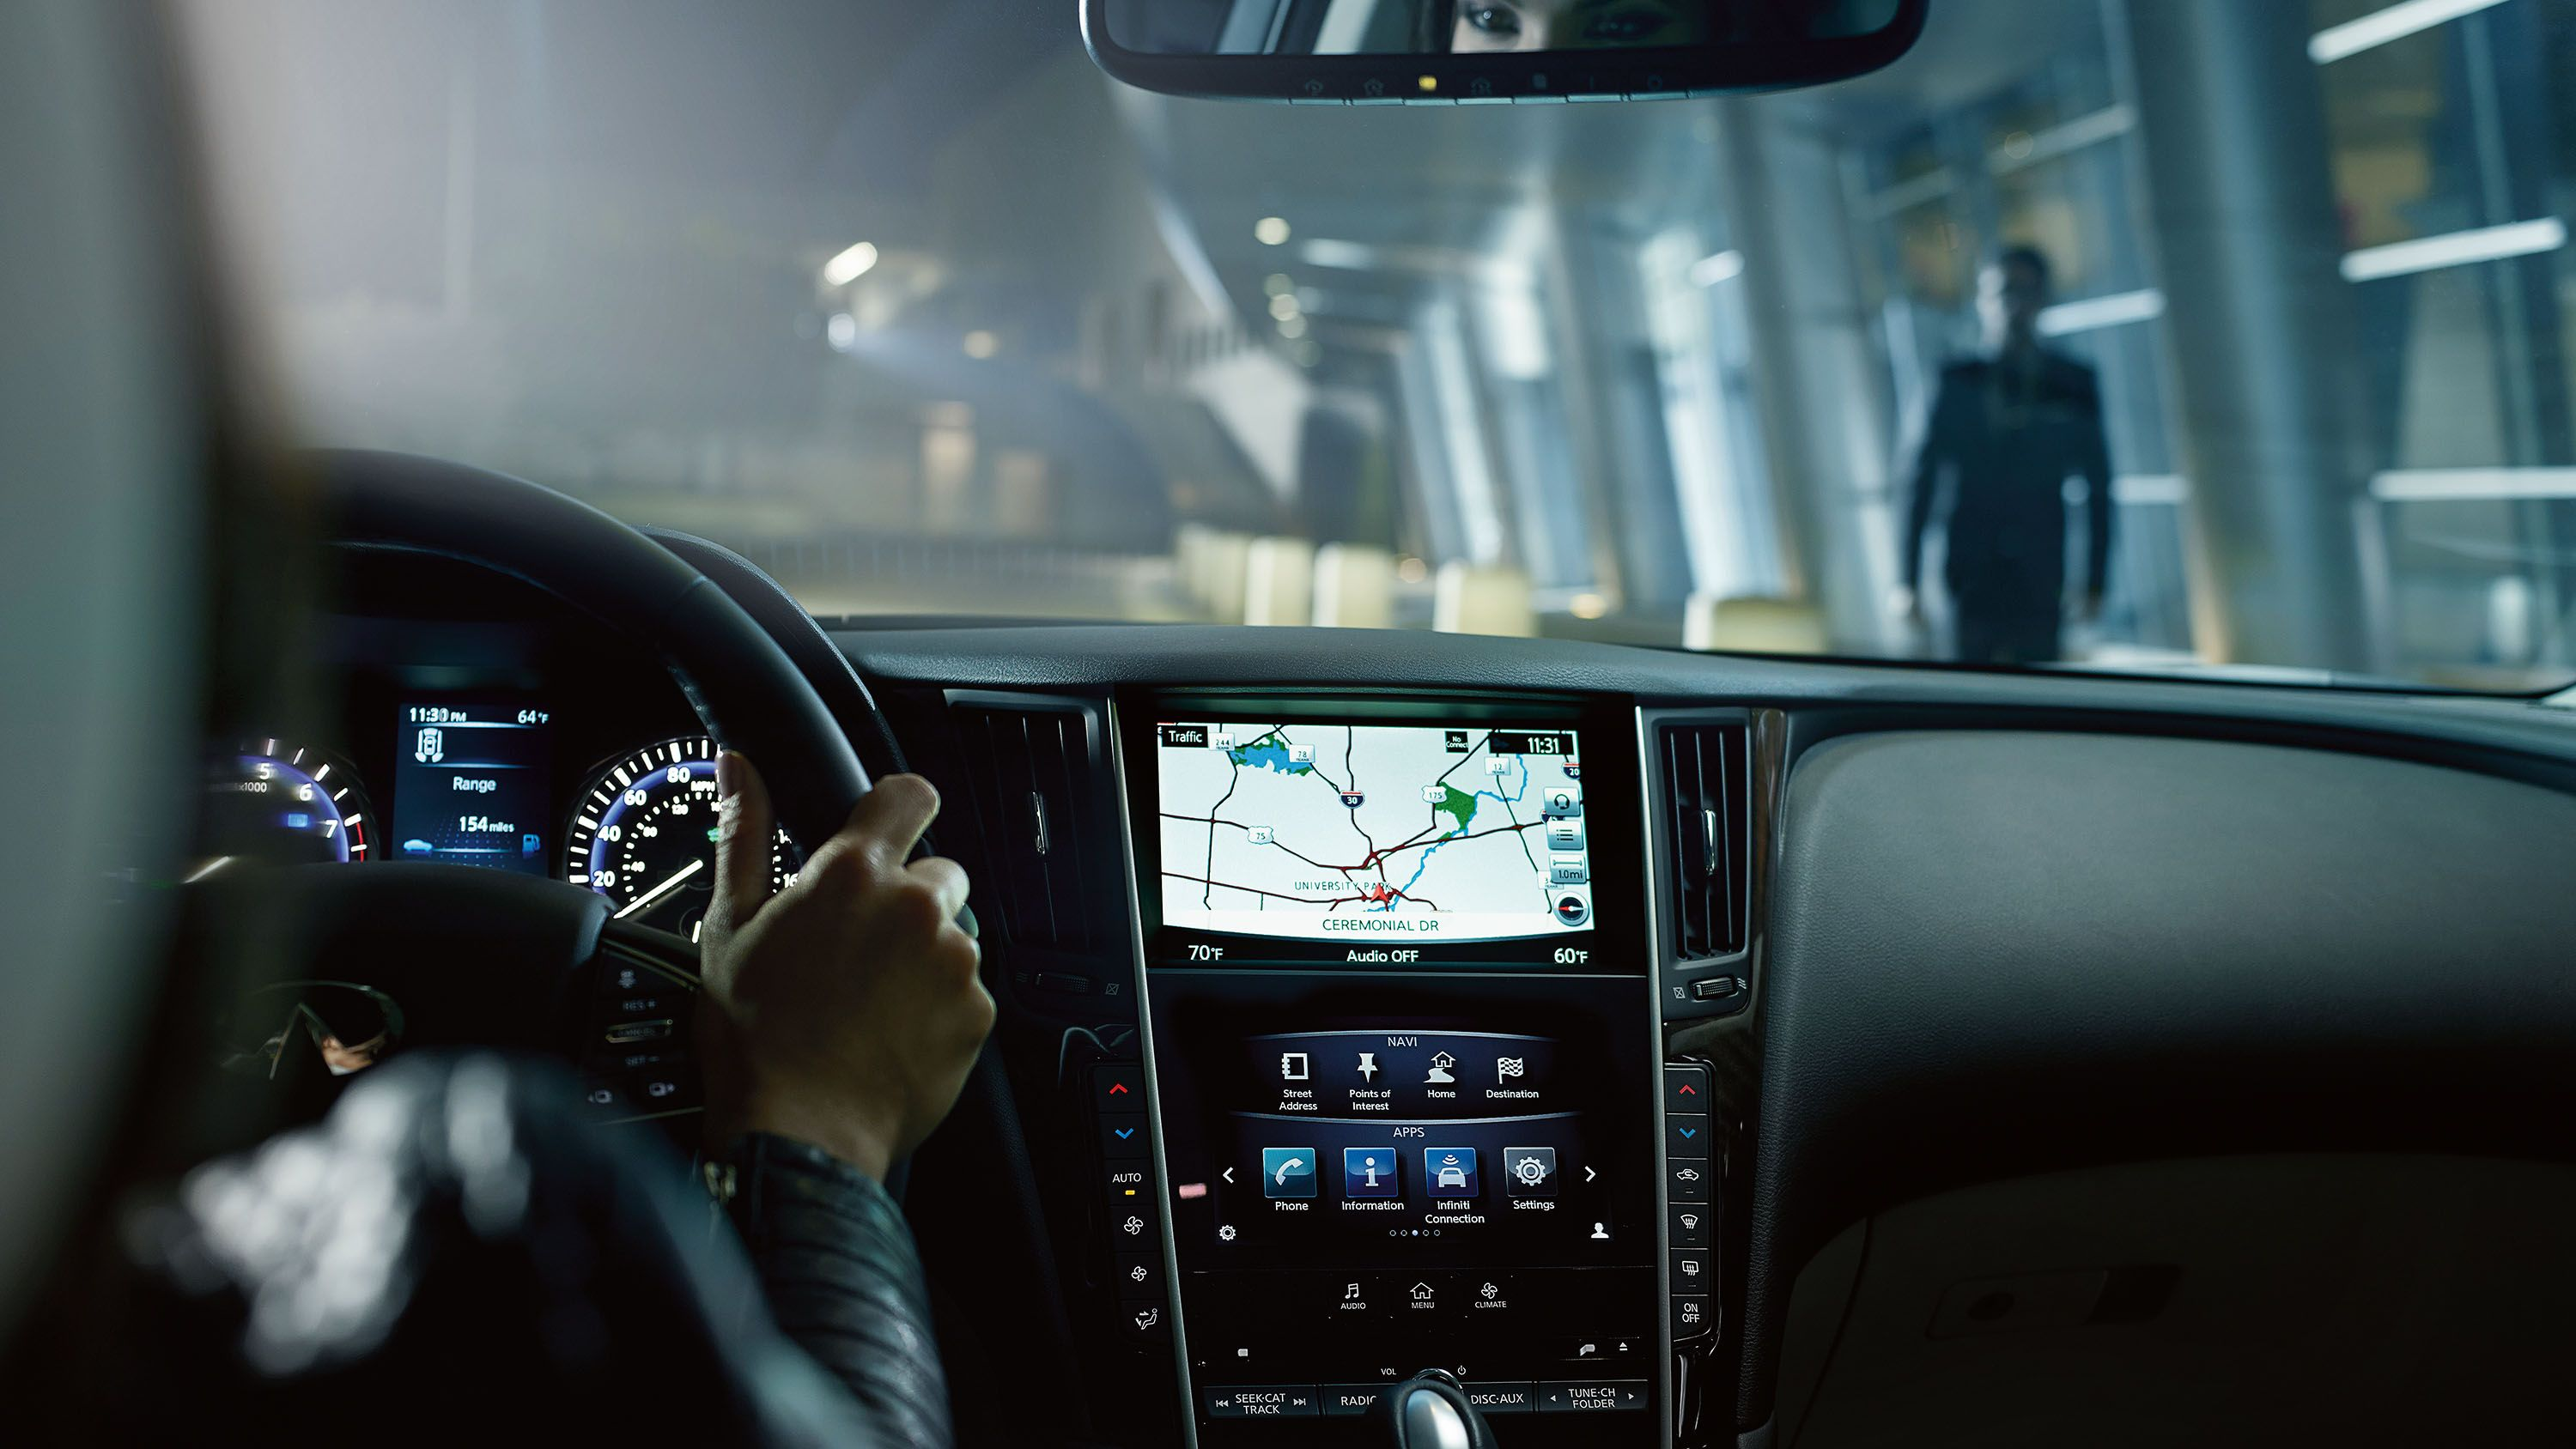 Explore the 2014 infiniti q50 from all angles see photos choose colors and watch